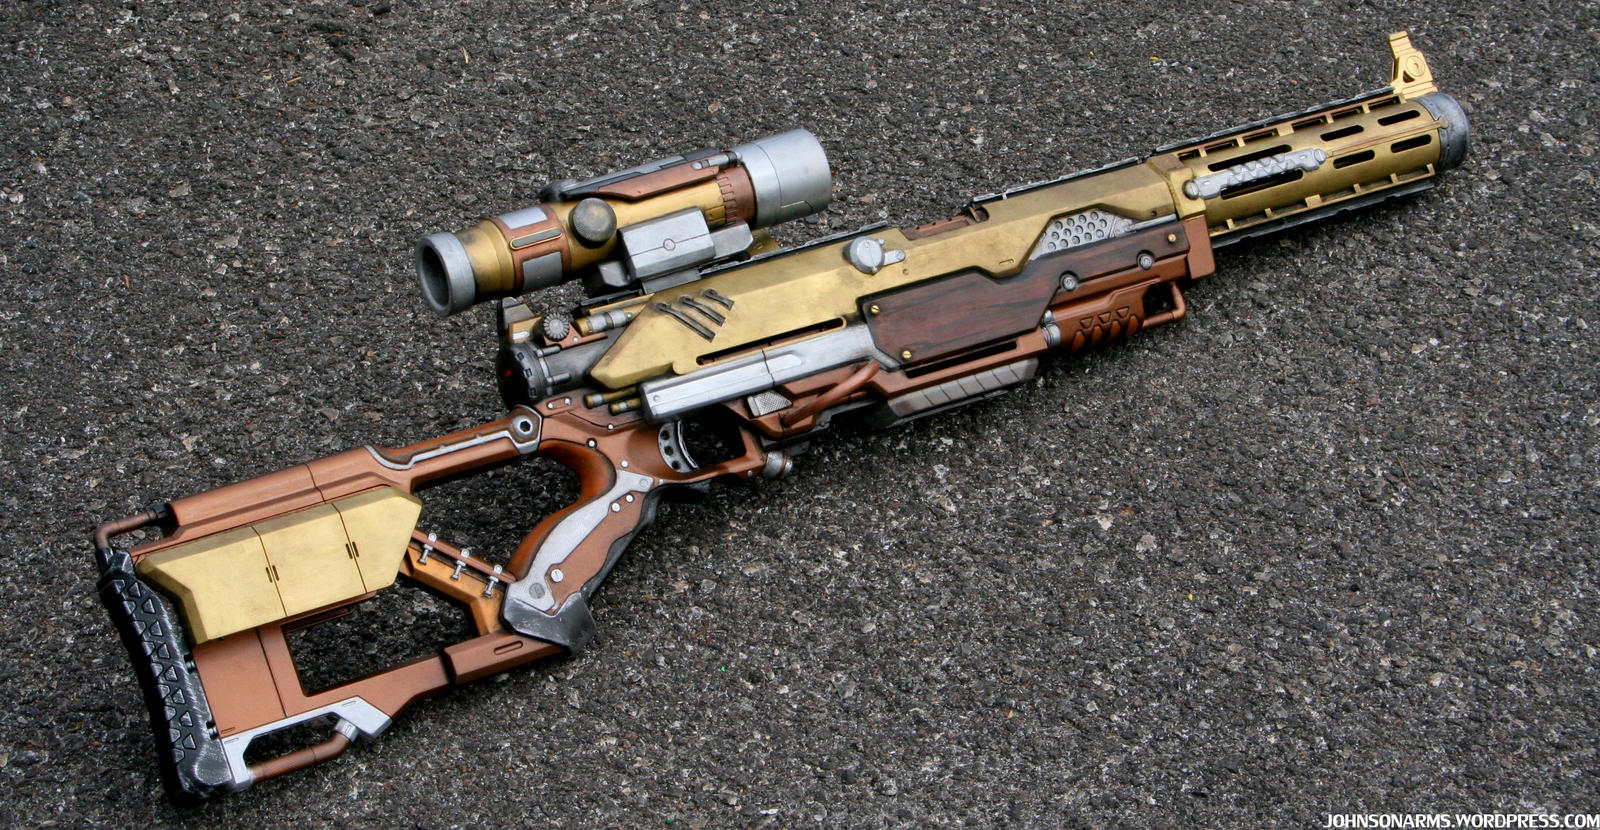 Steampunk Rifle - Outdoors Photo 2 by JohnsonArms